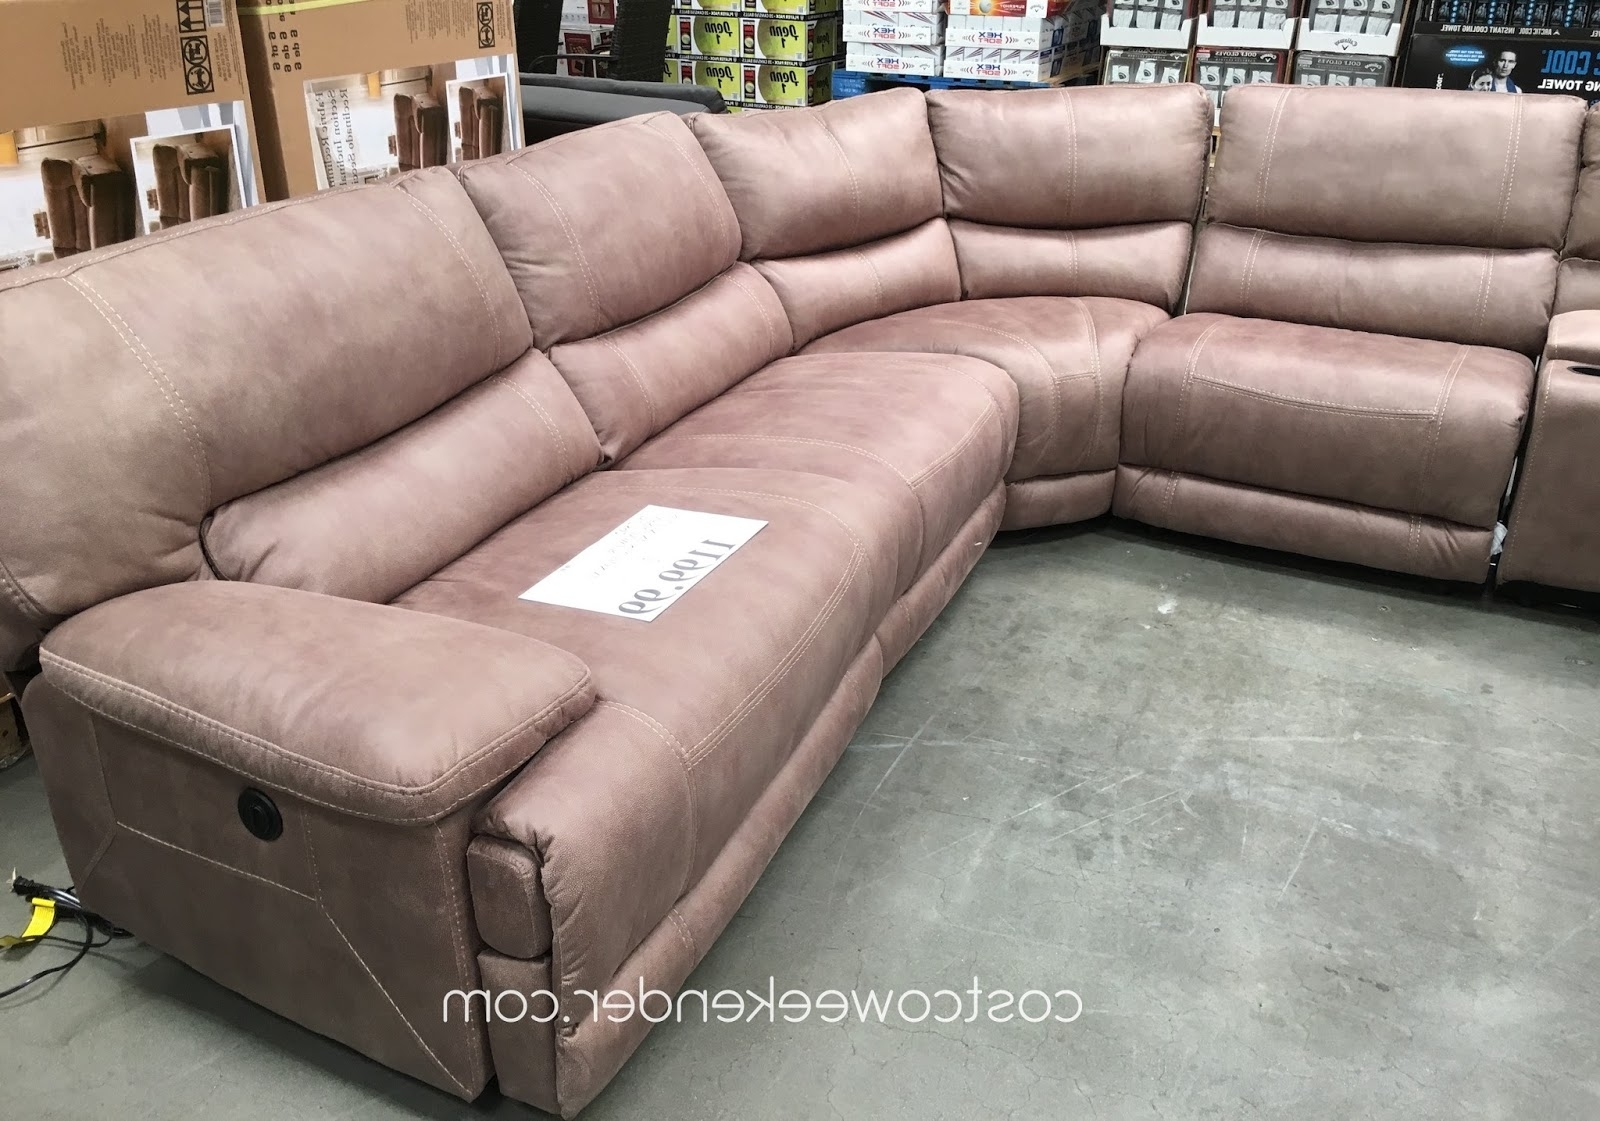 Costco Sectional Sofas – Home Design Ideas And Pictures Inside Best And Newest Sectional Sofas At Costco (View 4 of 20)